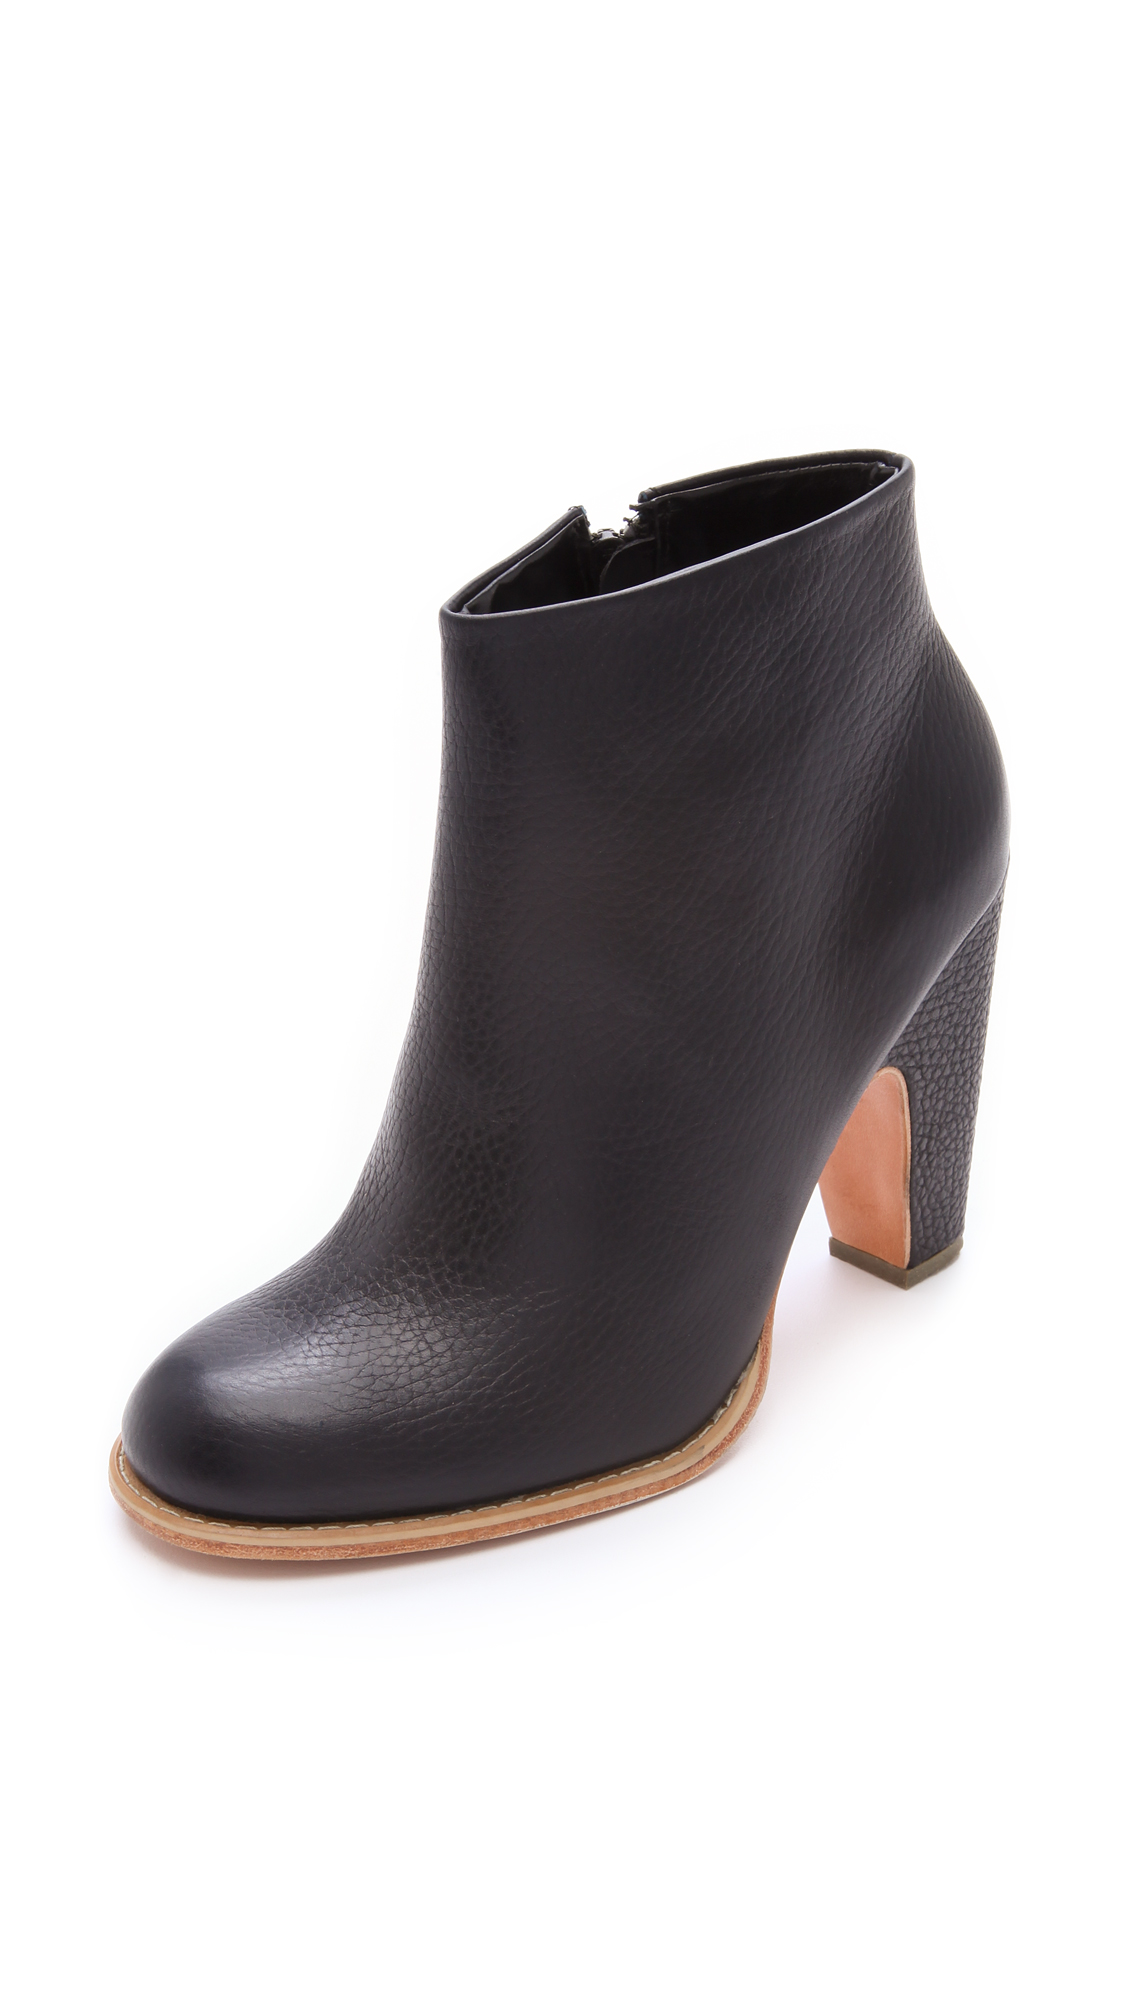 Rachel Comey Willow Leather Ankle Boots low shipping cheap online YuZNs5tv